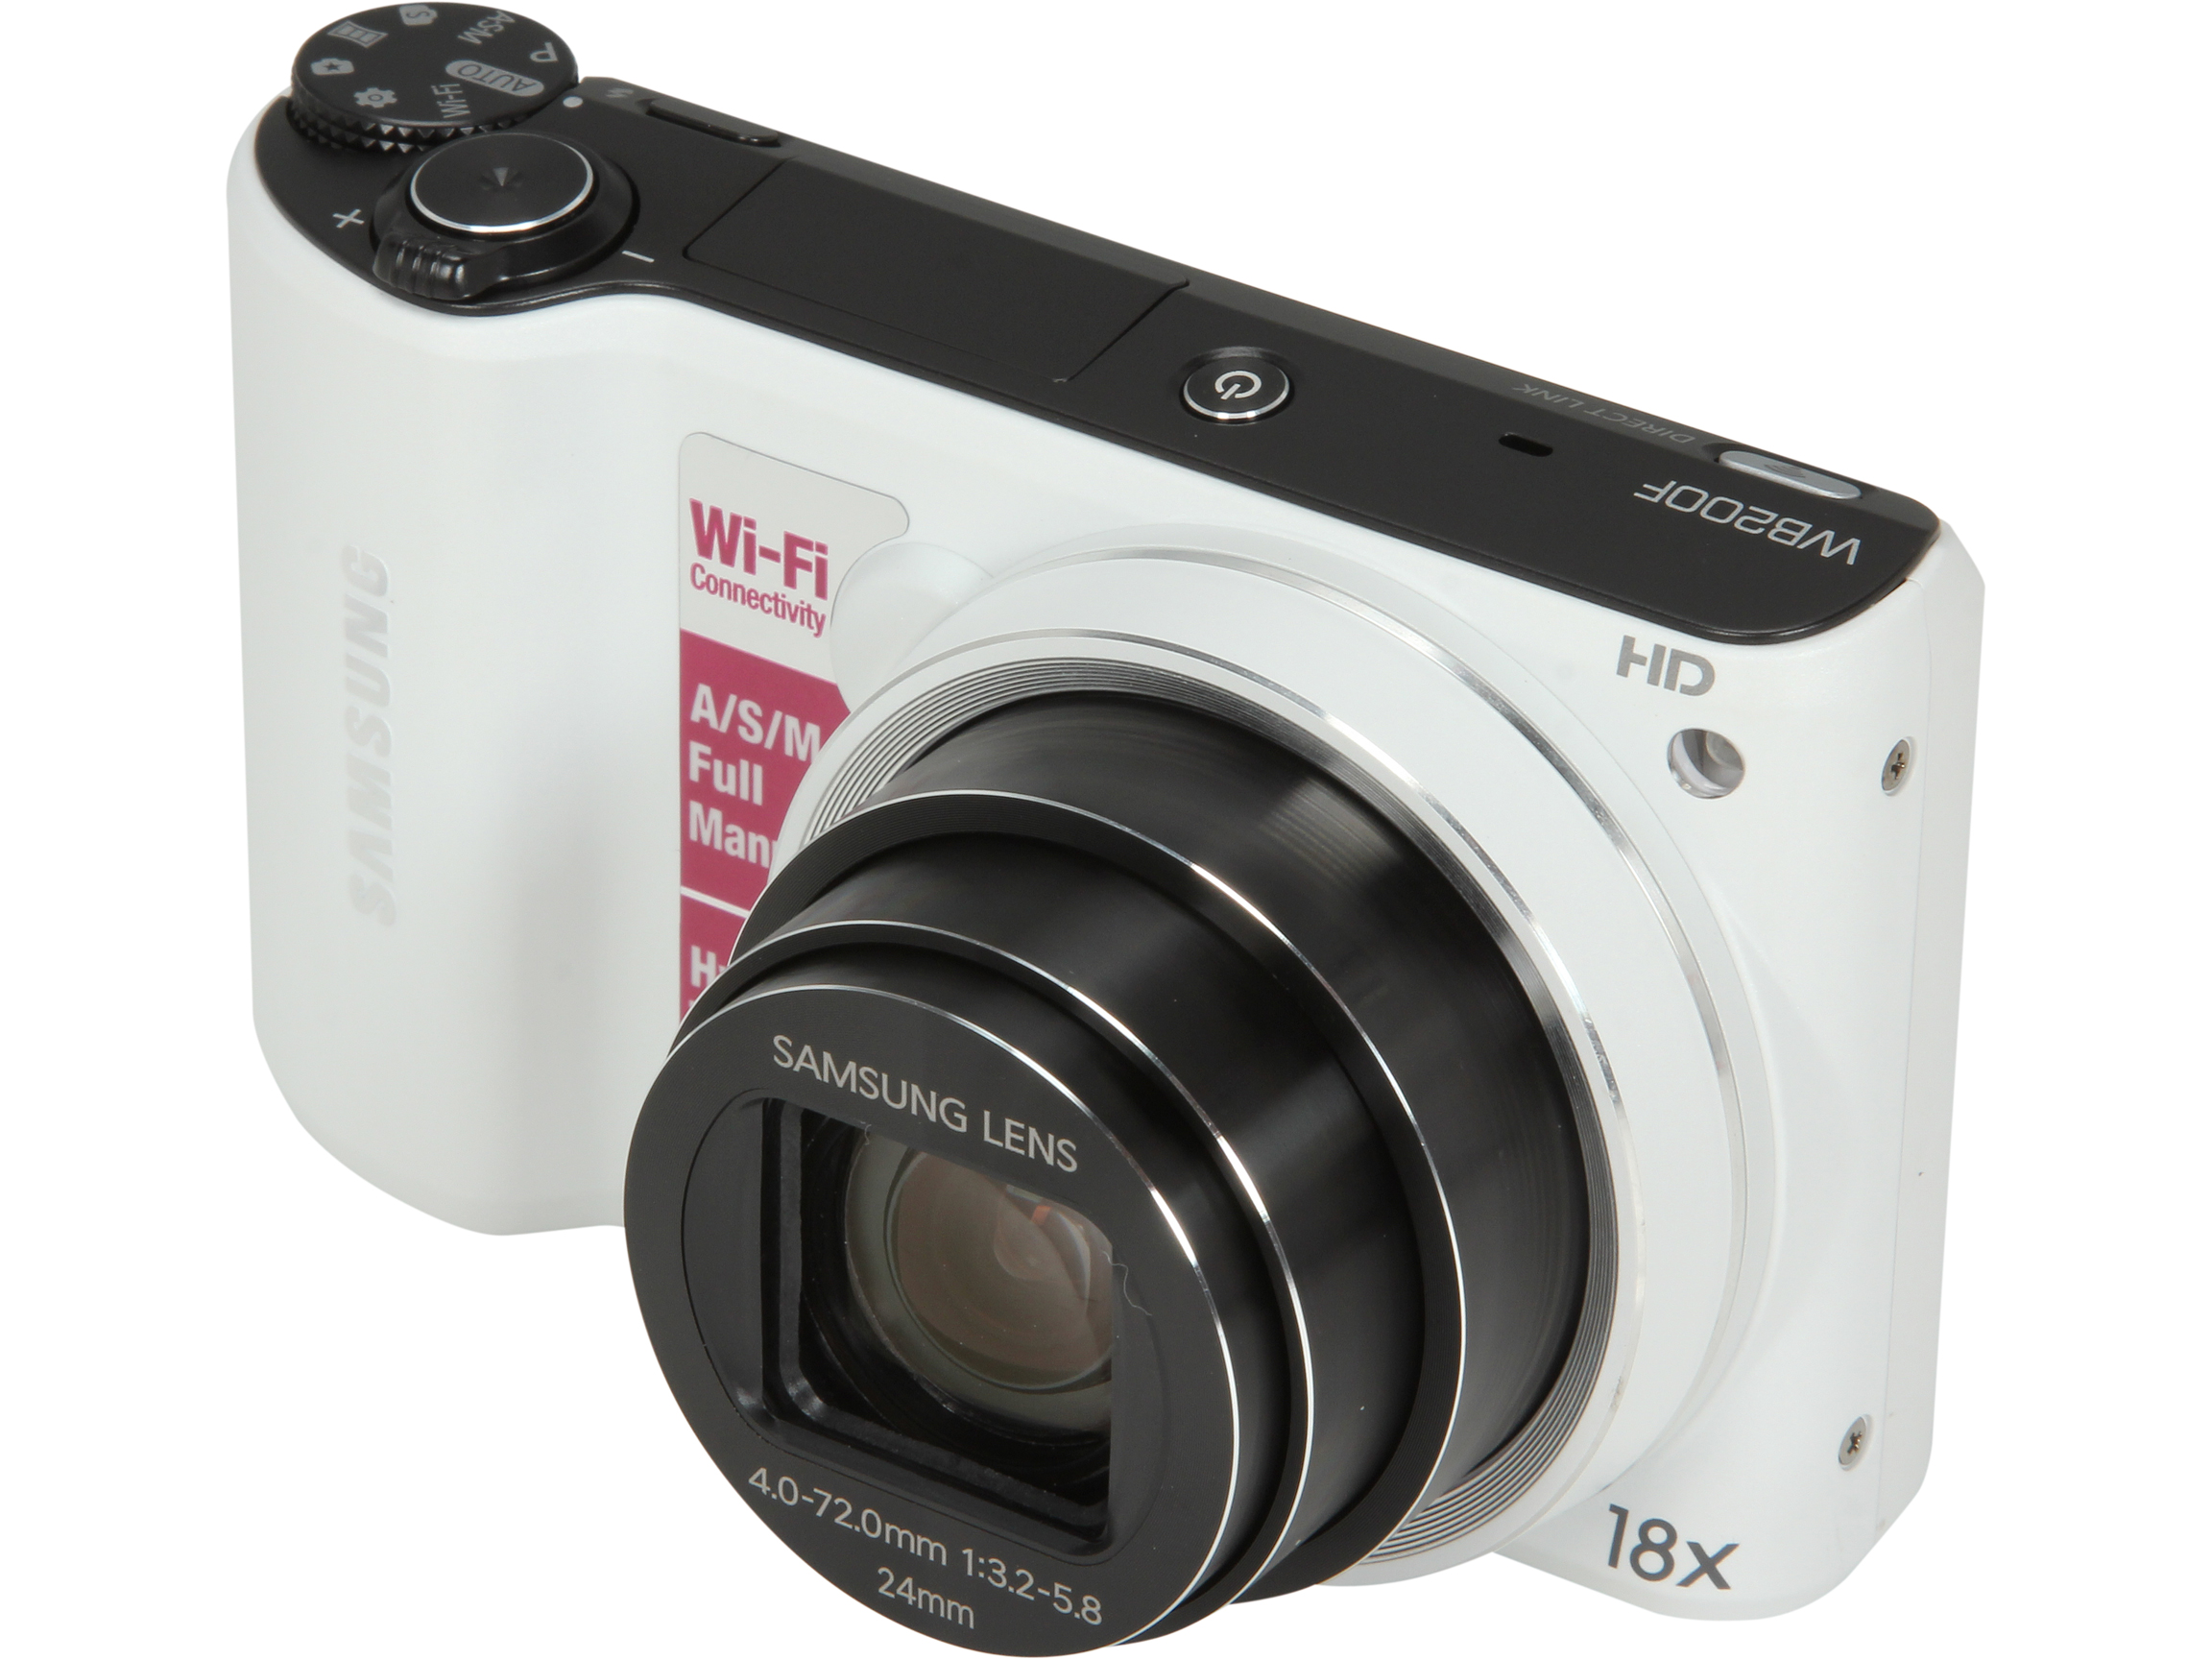 Refurbished: Samsung 14.2MP Digital Camera With Wi-Fi, EC-WB200F (White)